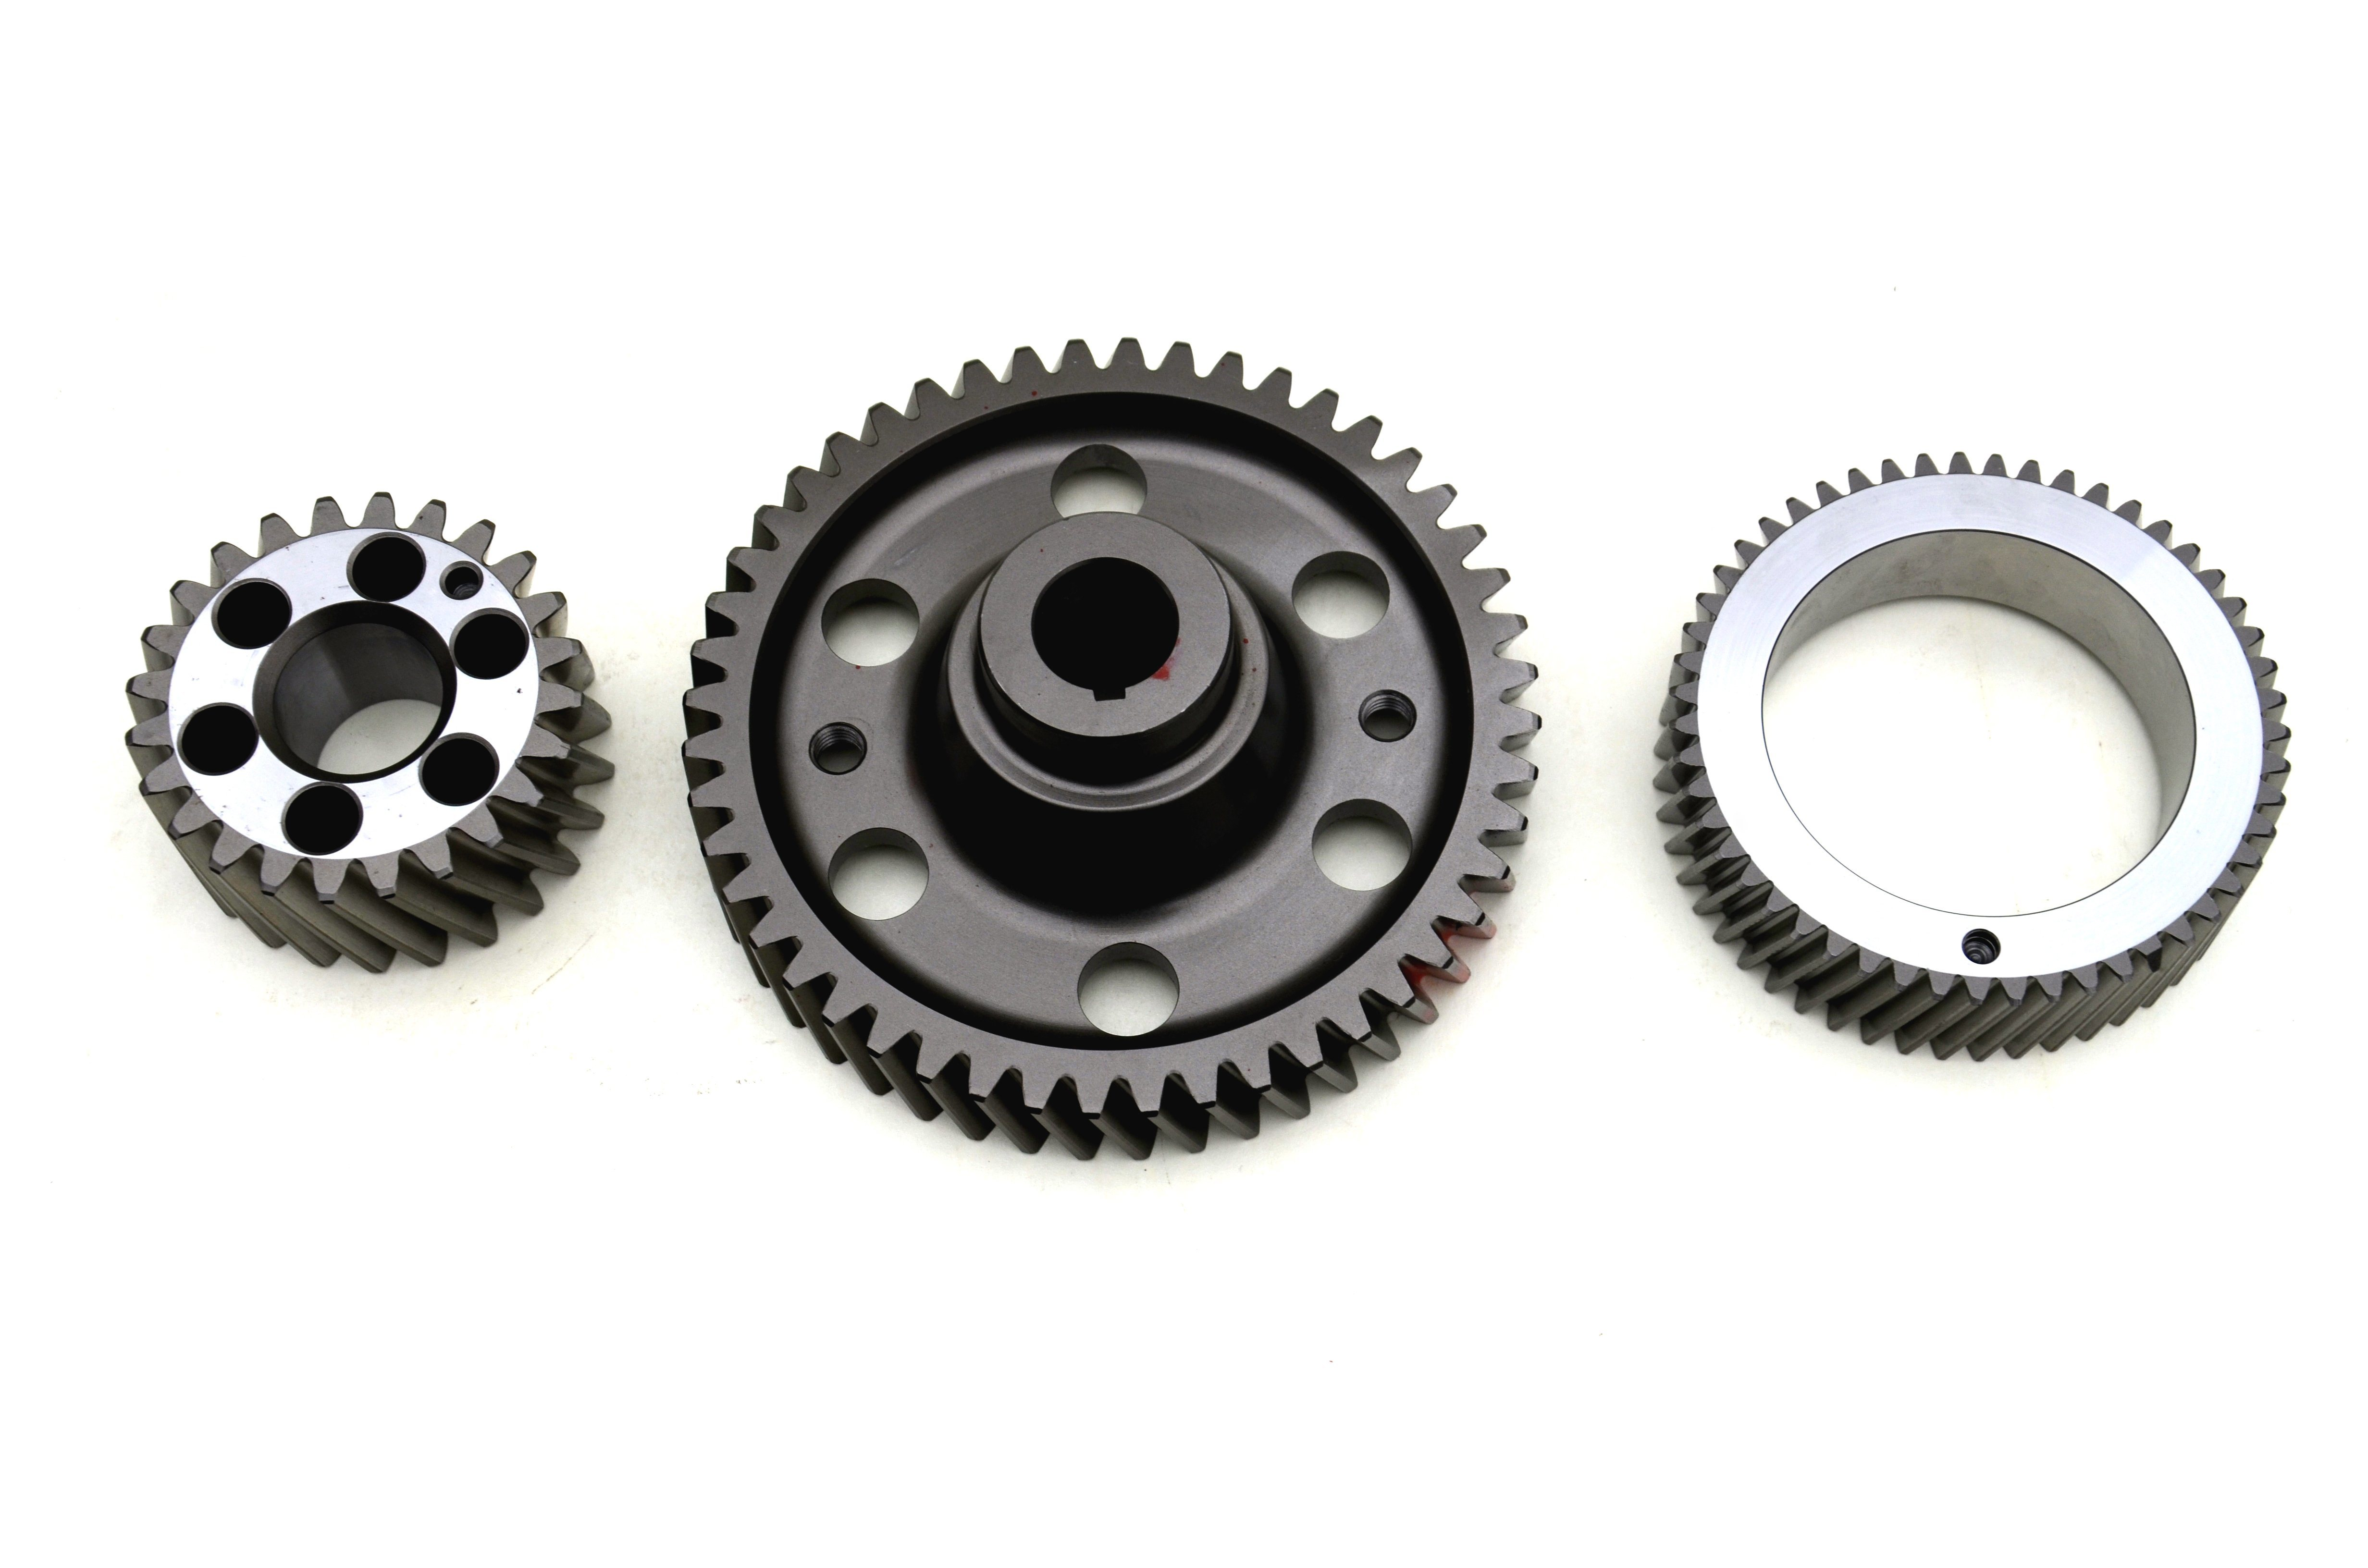 Blank Stainless Carbon Steel Die Forging Forged Gear For Car Parts